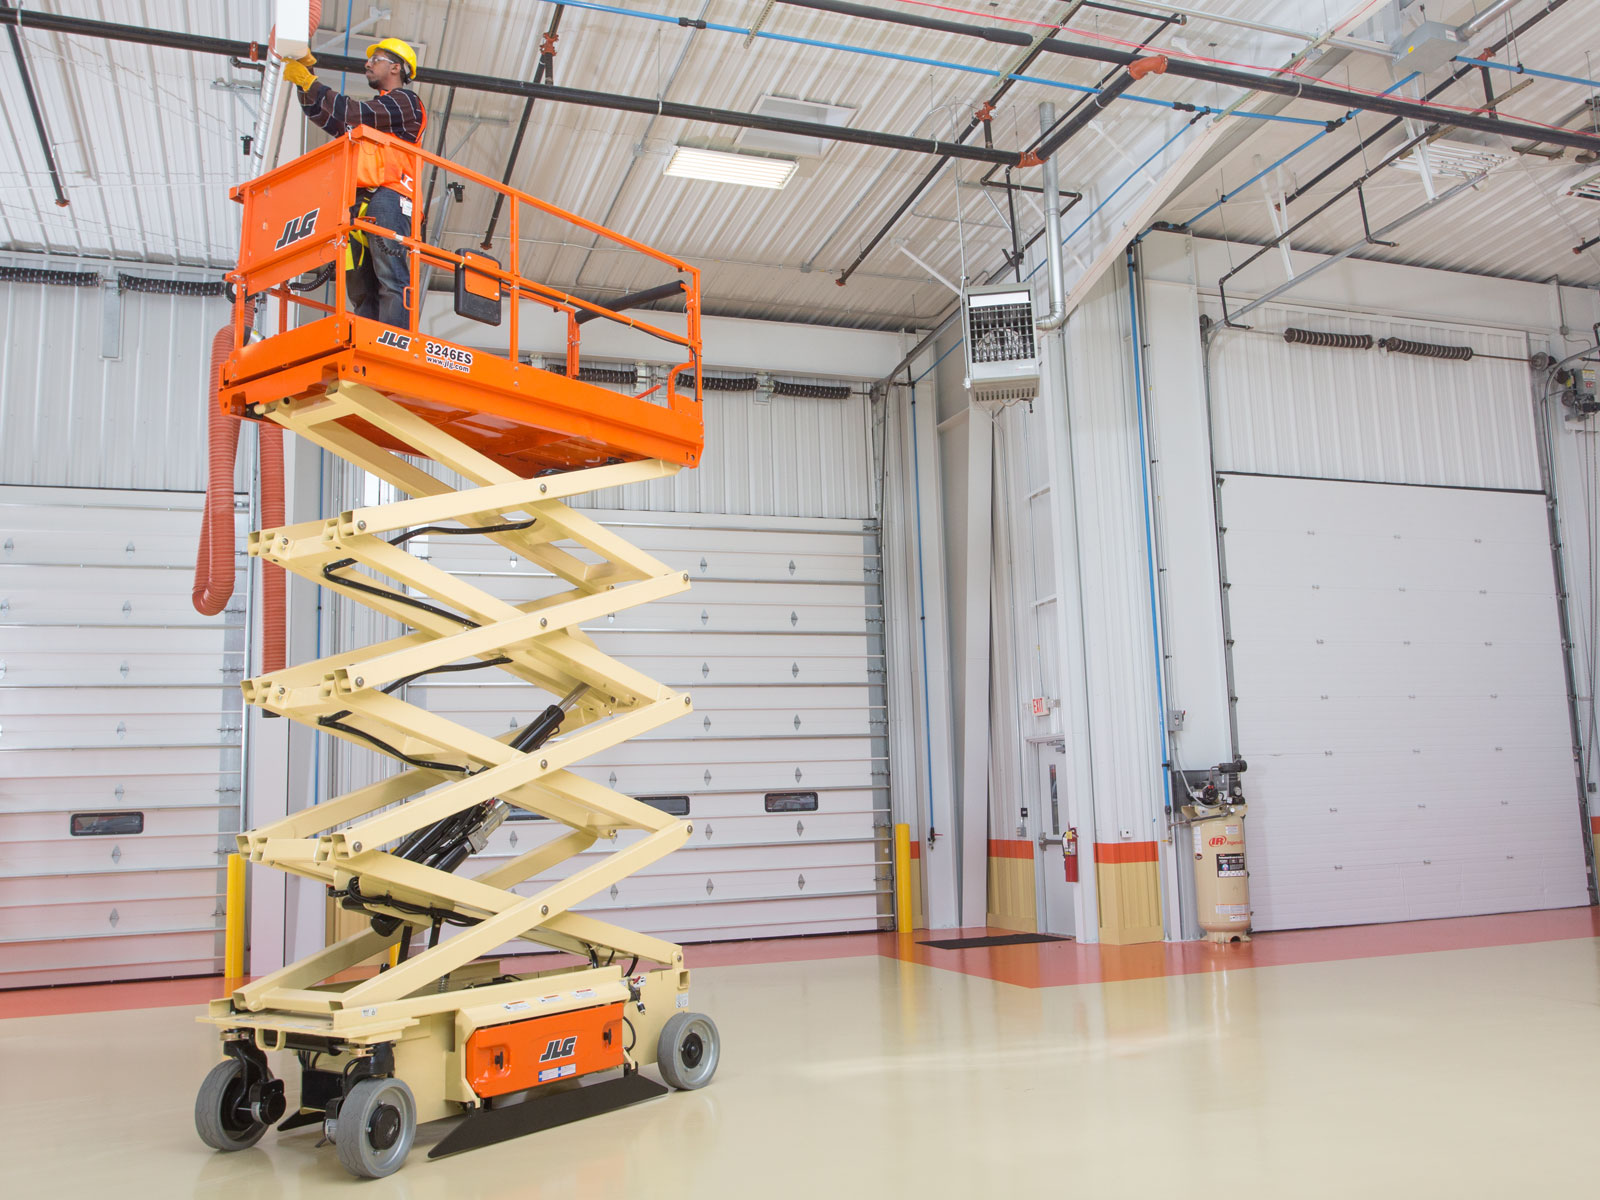 3246ES Electric Scissor Lift | JLG on